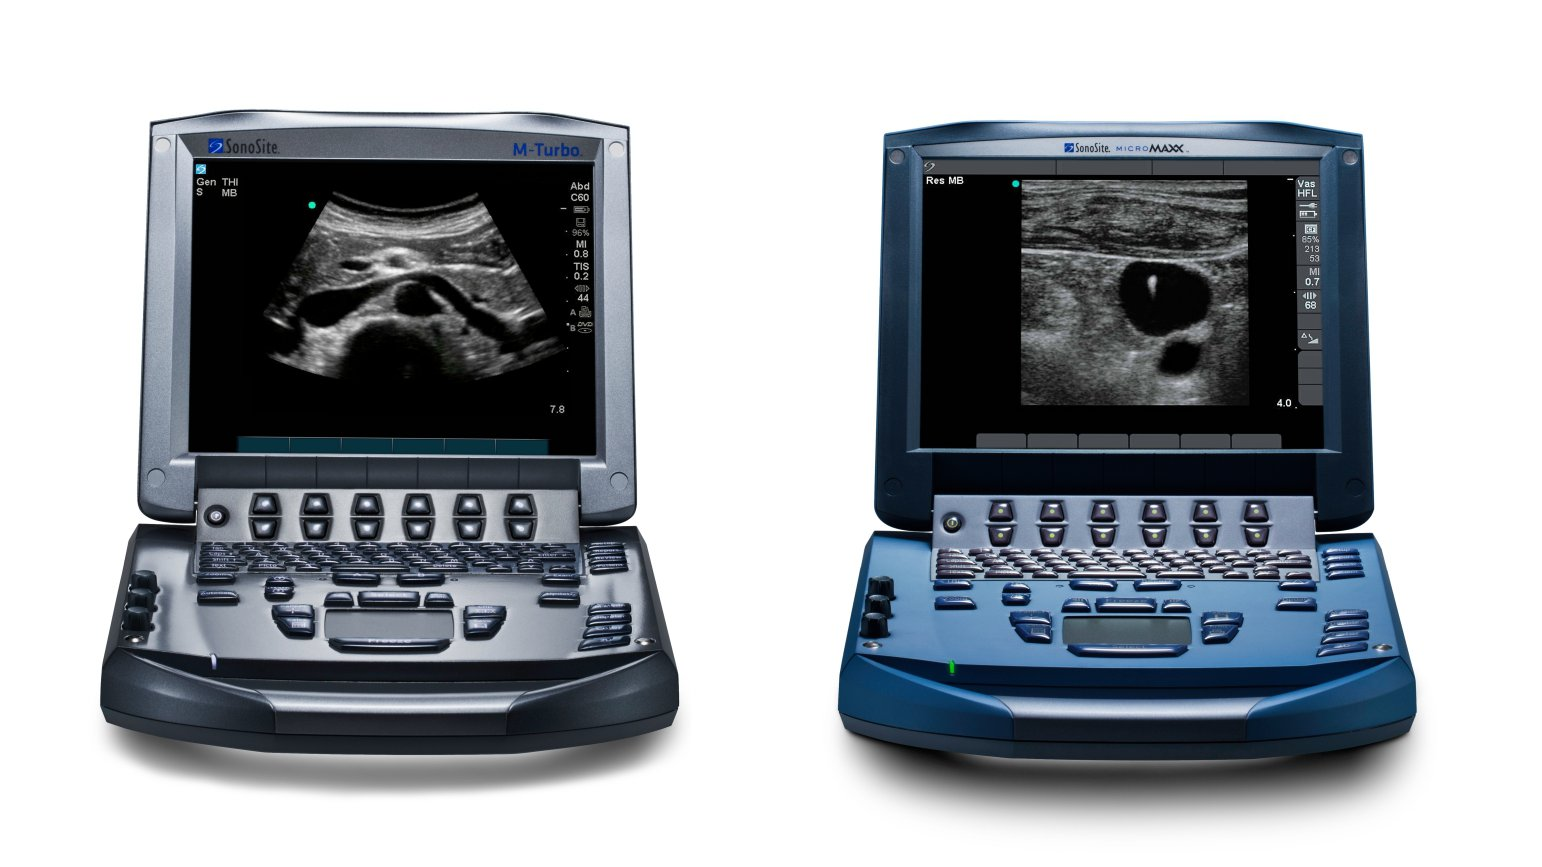 Micromaxx and M-Turbo Ultrasound Machines